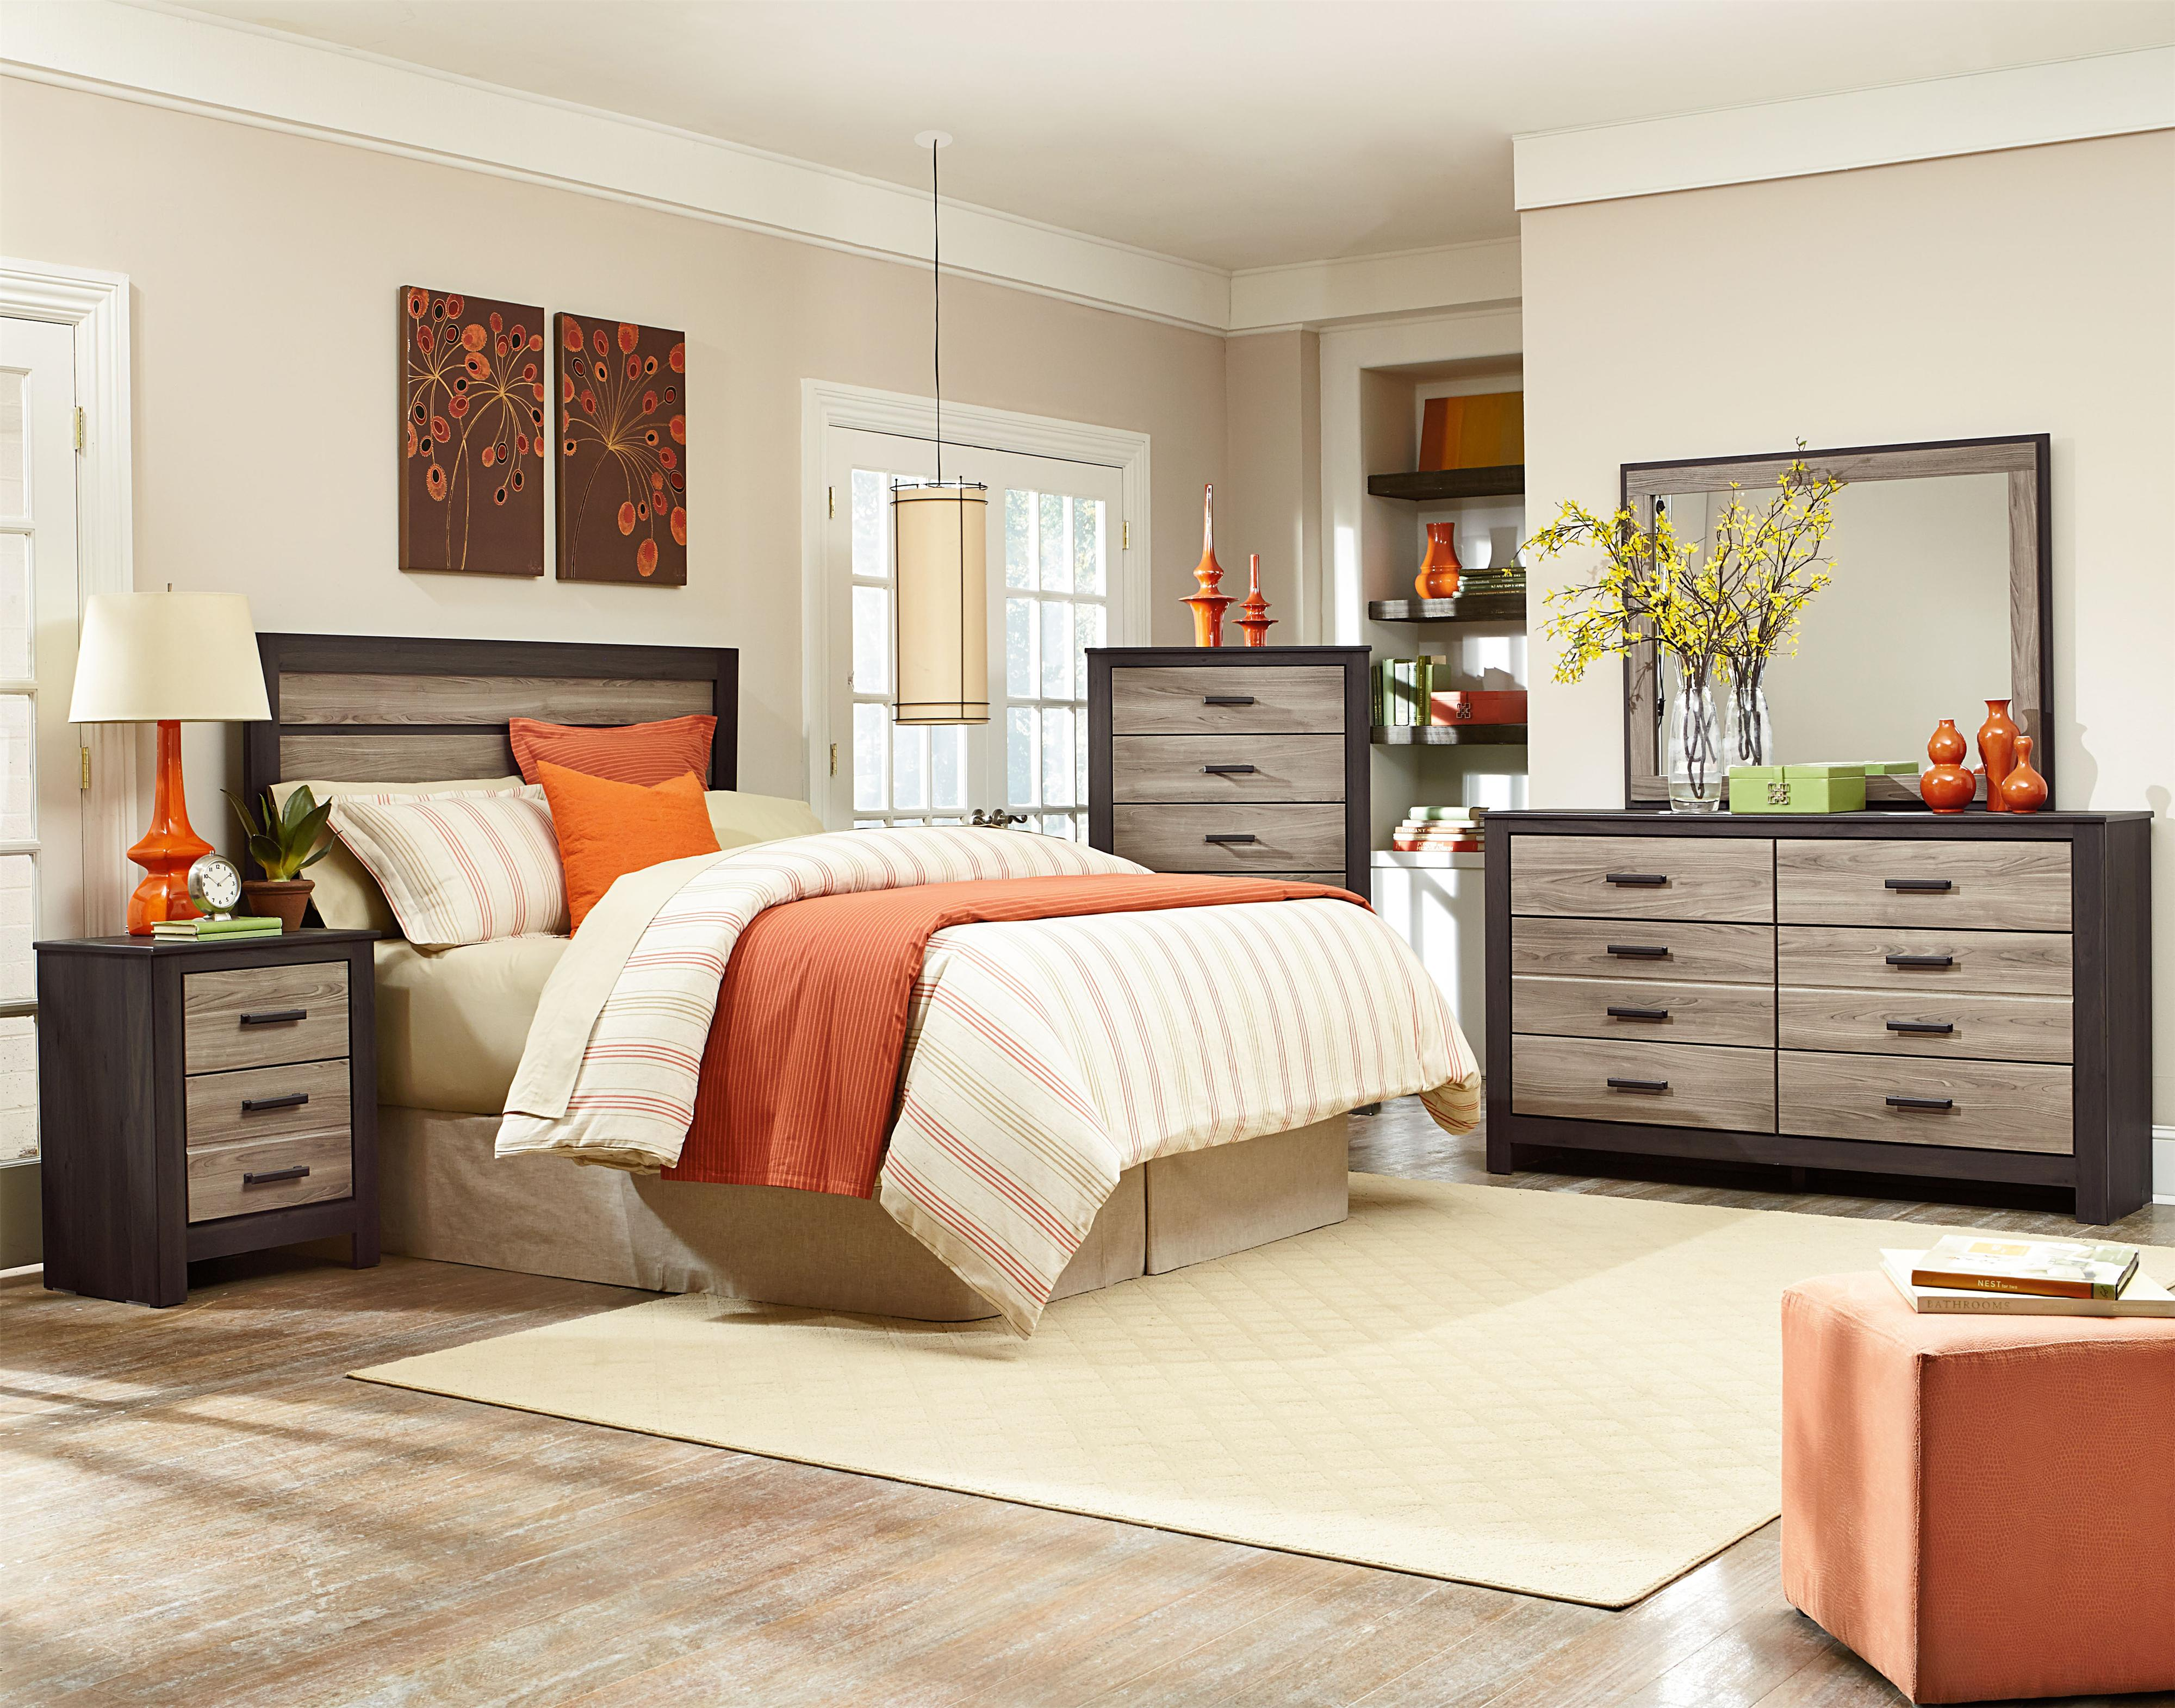 Standard Furniture Freemont Full Bedroom Group - Item Number: 69750 F Bedroom Group 3